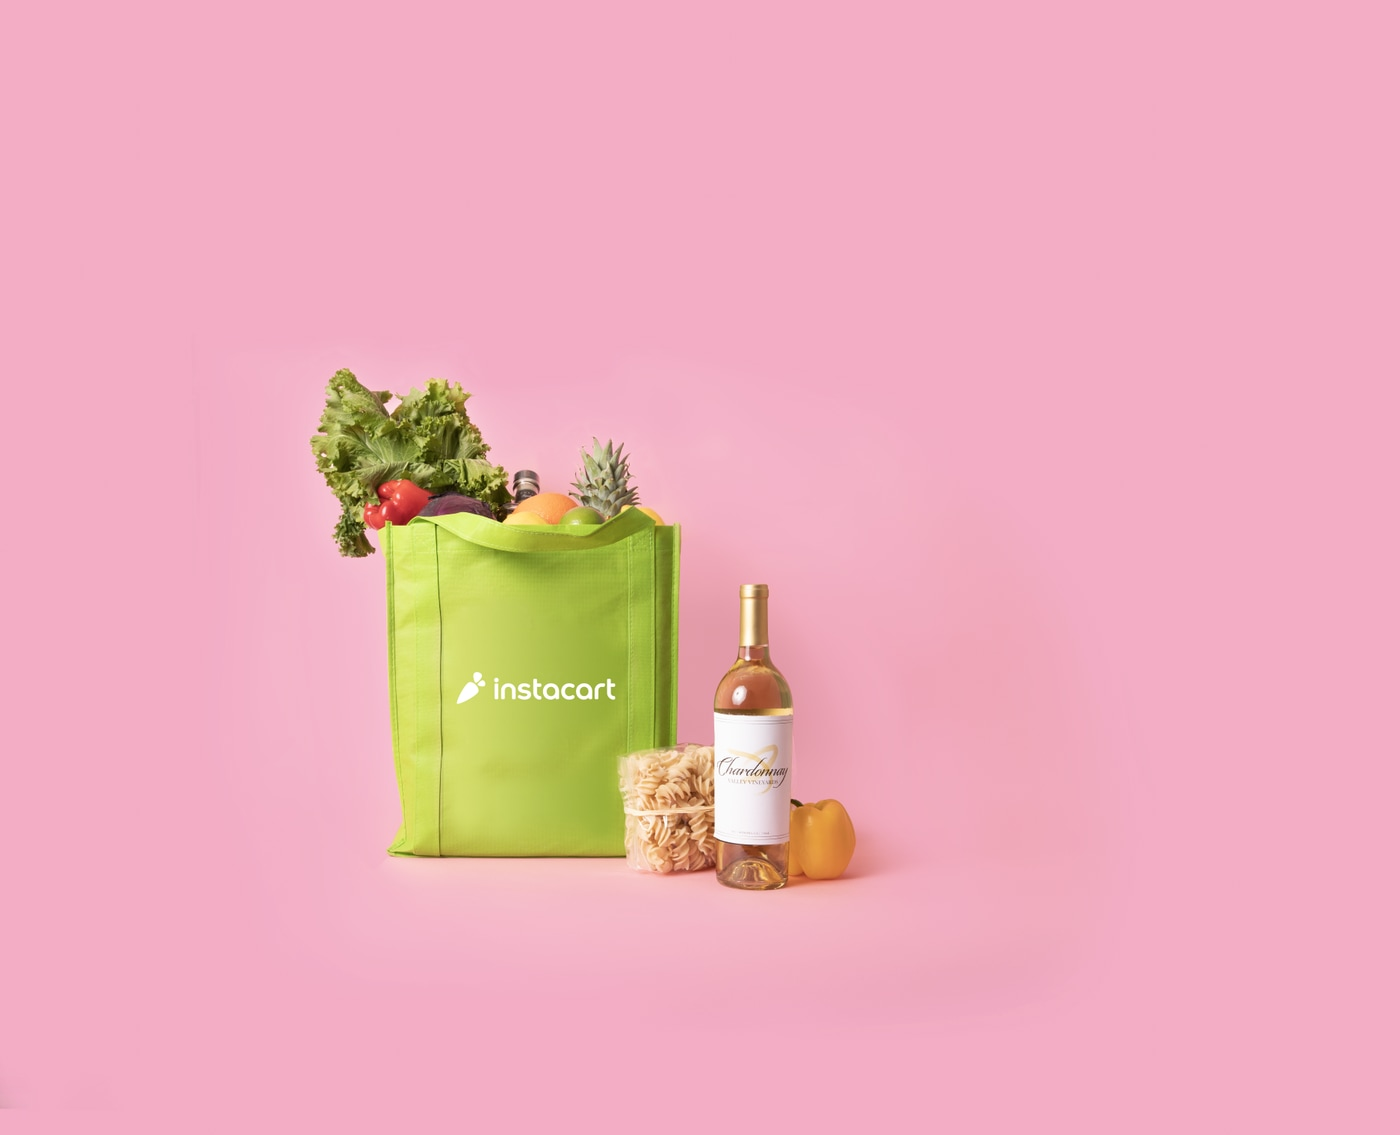 Instacart (Marketing)